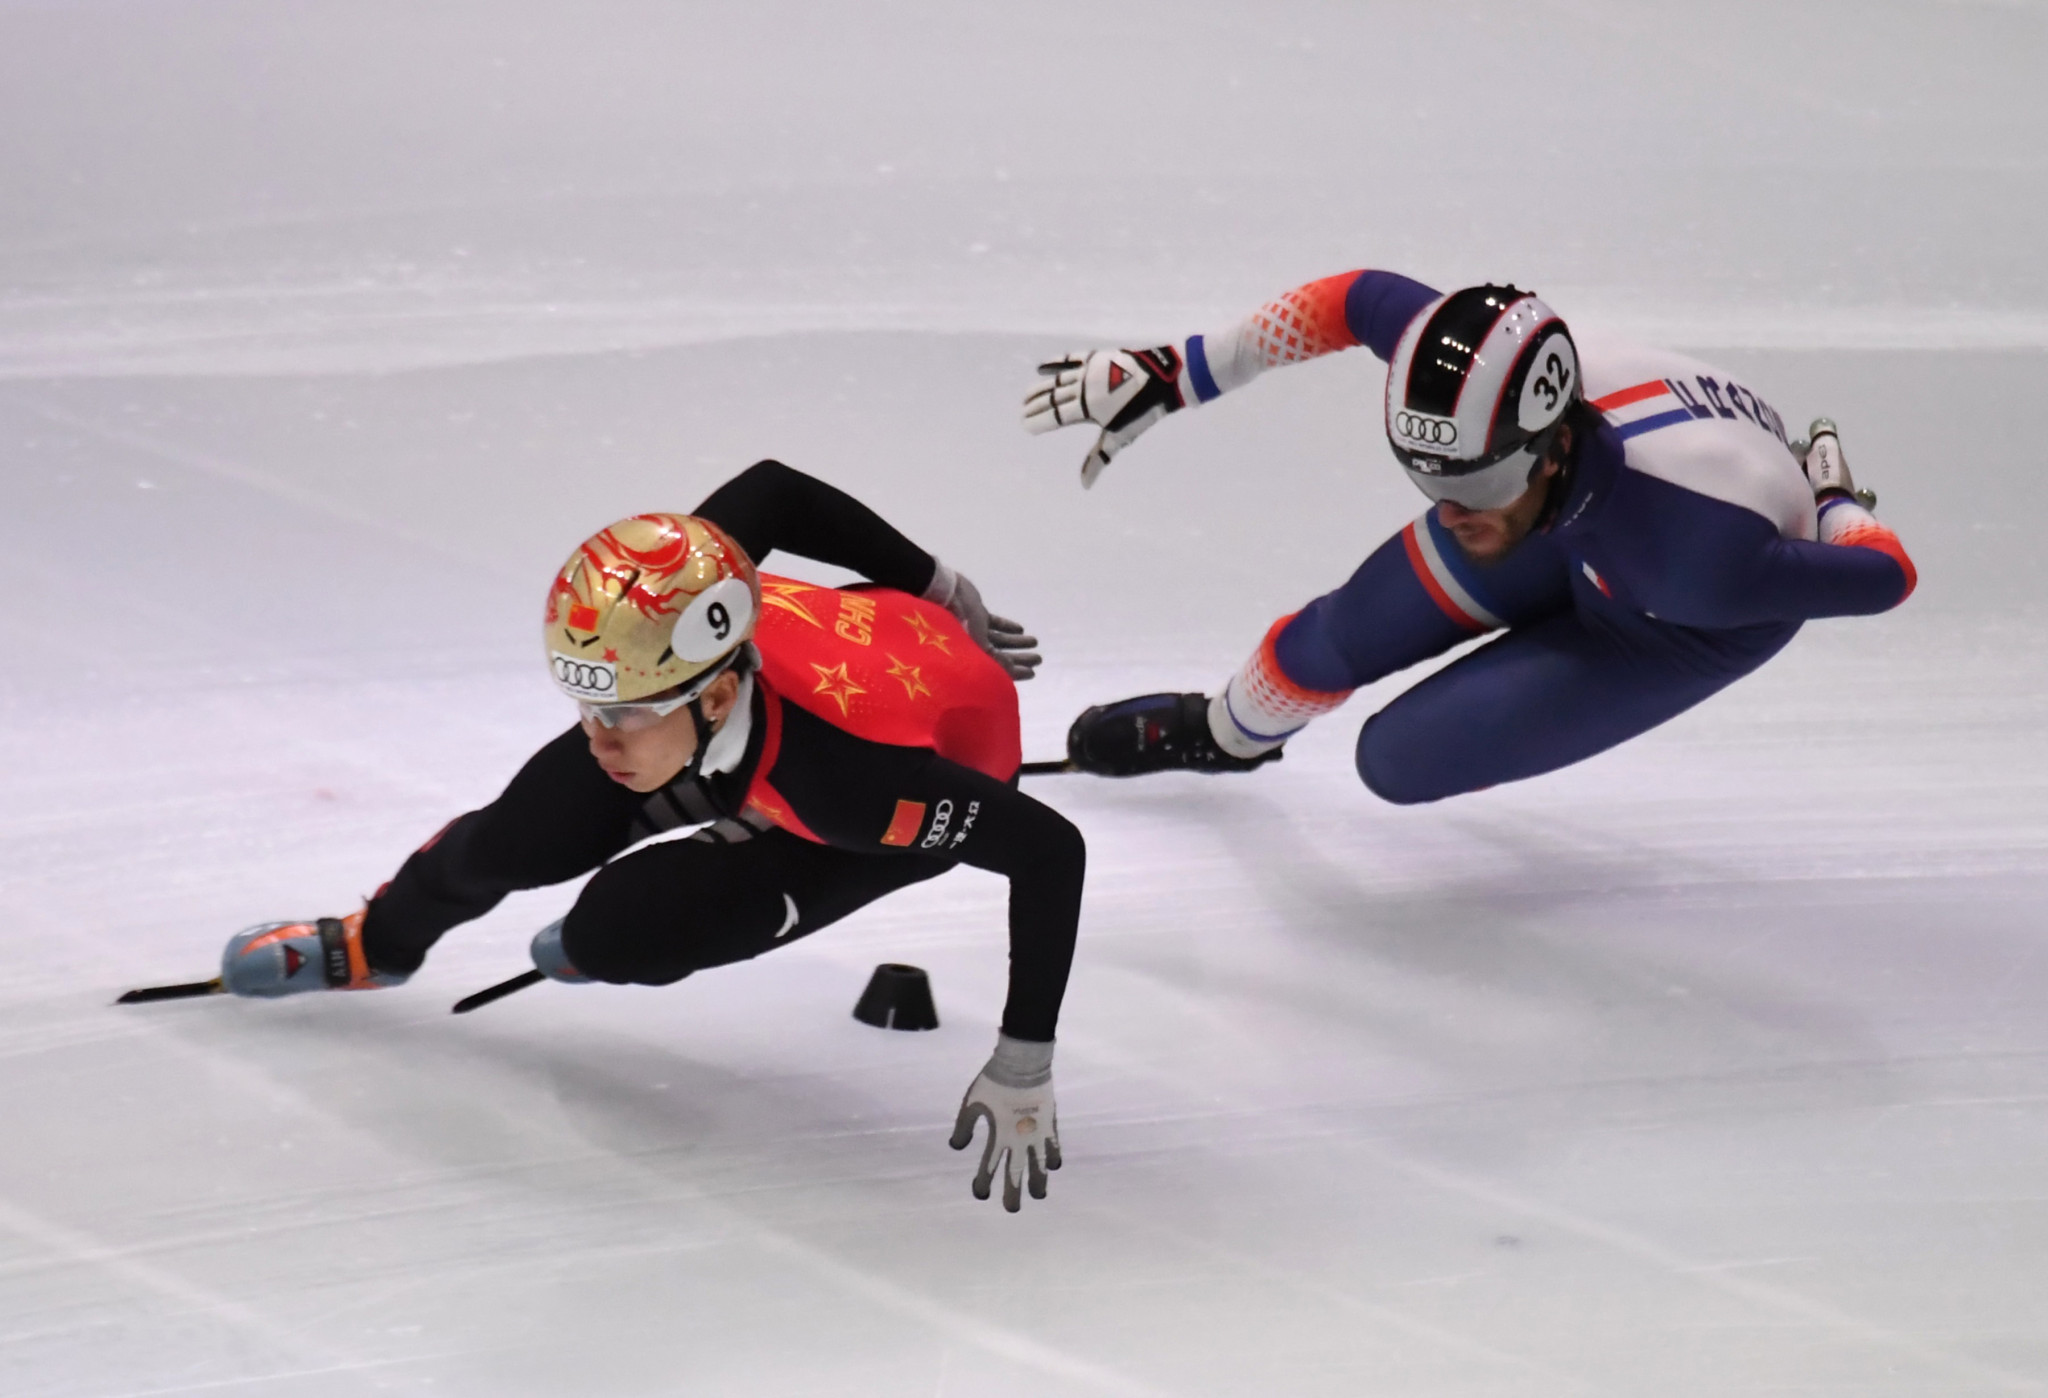 China impress in relay quarter-finals at ISU World Cup Short Track Speed Skating event in Dordrecht